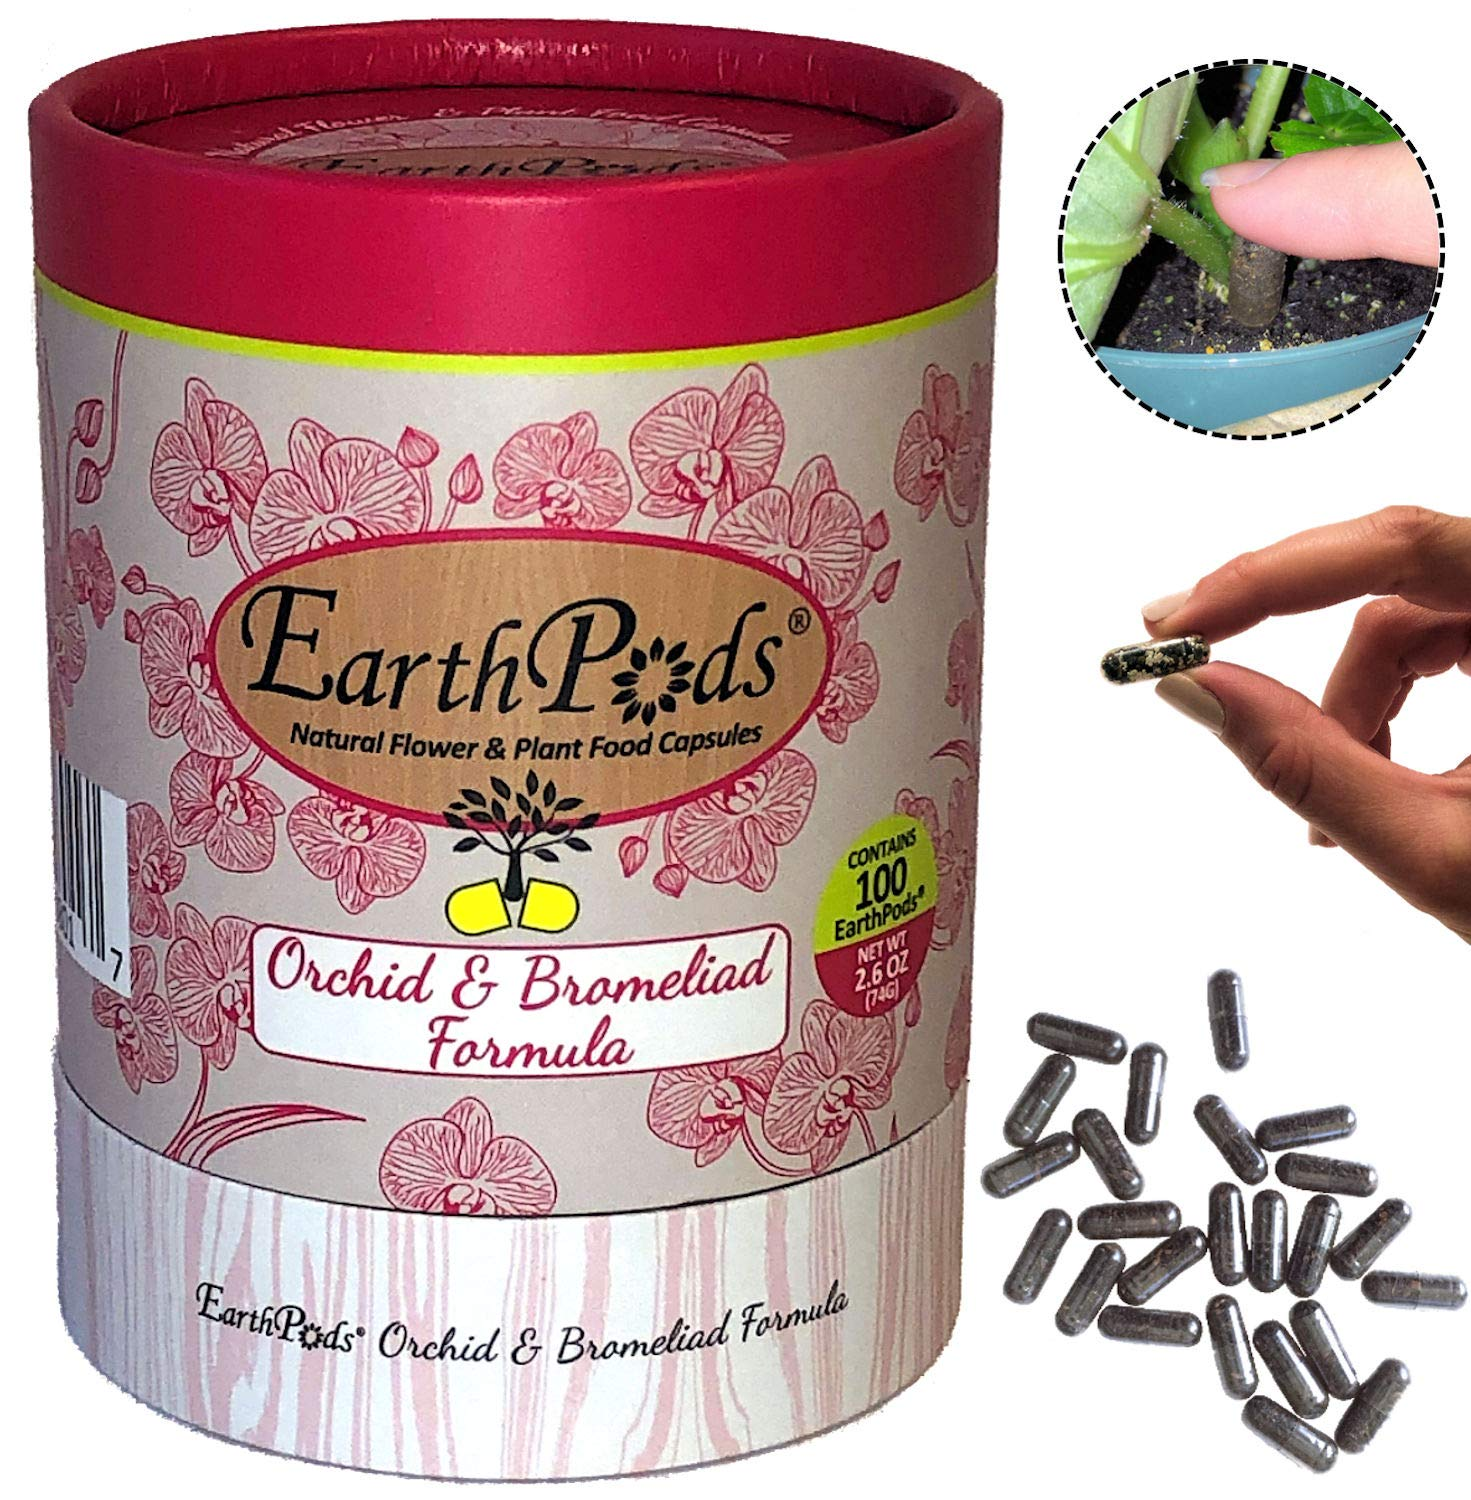 EarthPods Premium Orchid Plant Food – Easy Organic Fertilizer Spikes – 100 Capsules – Stimulates Flower Blooms, Roots & Leaves (Also Great for Bromeliads & Tillandsia Air Plants, No Urea, Ecofriendly)